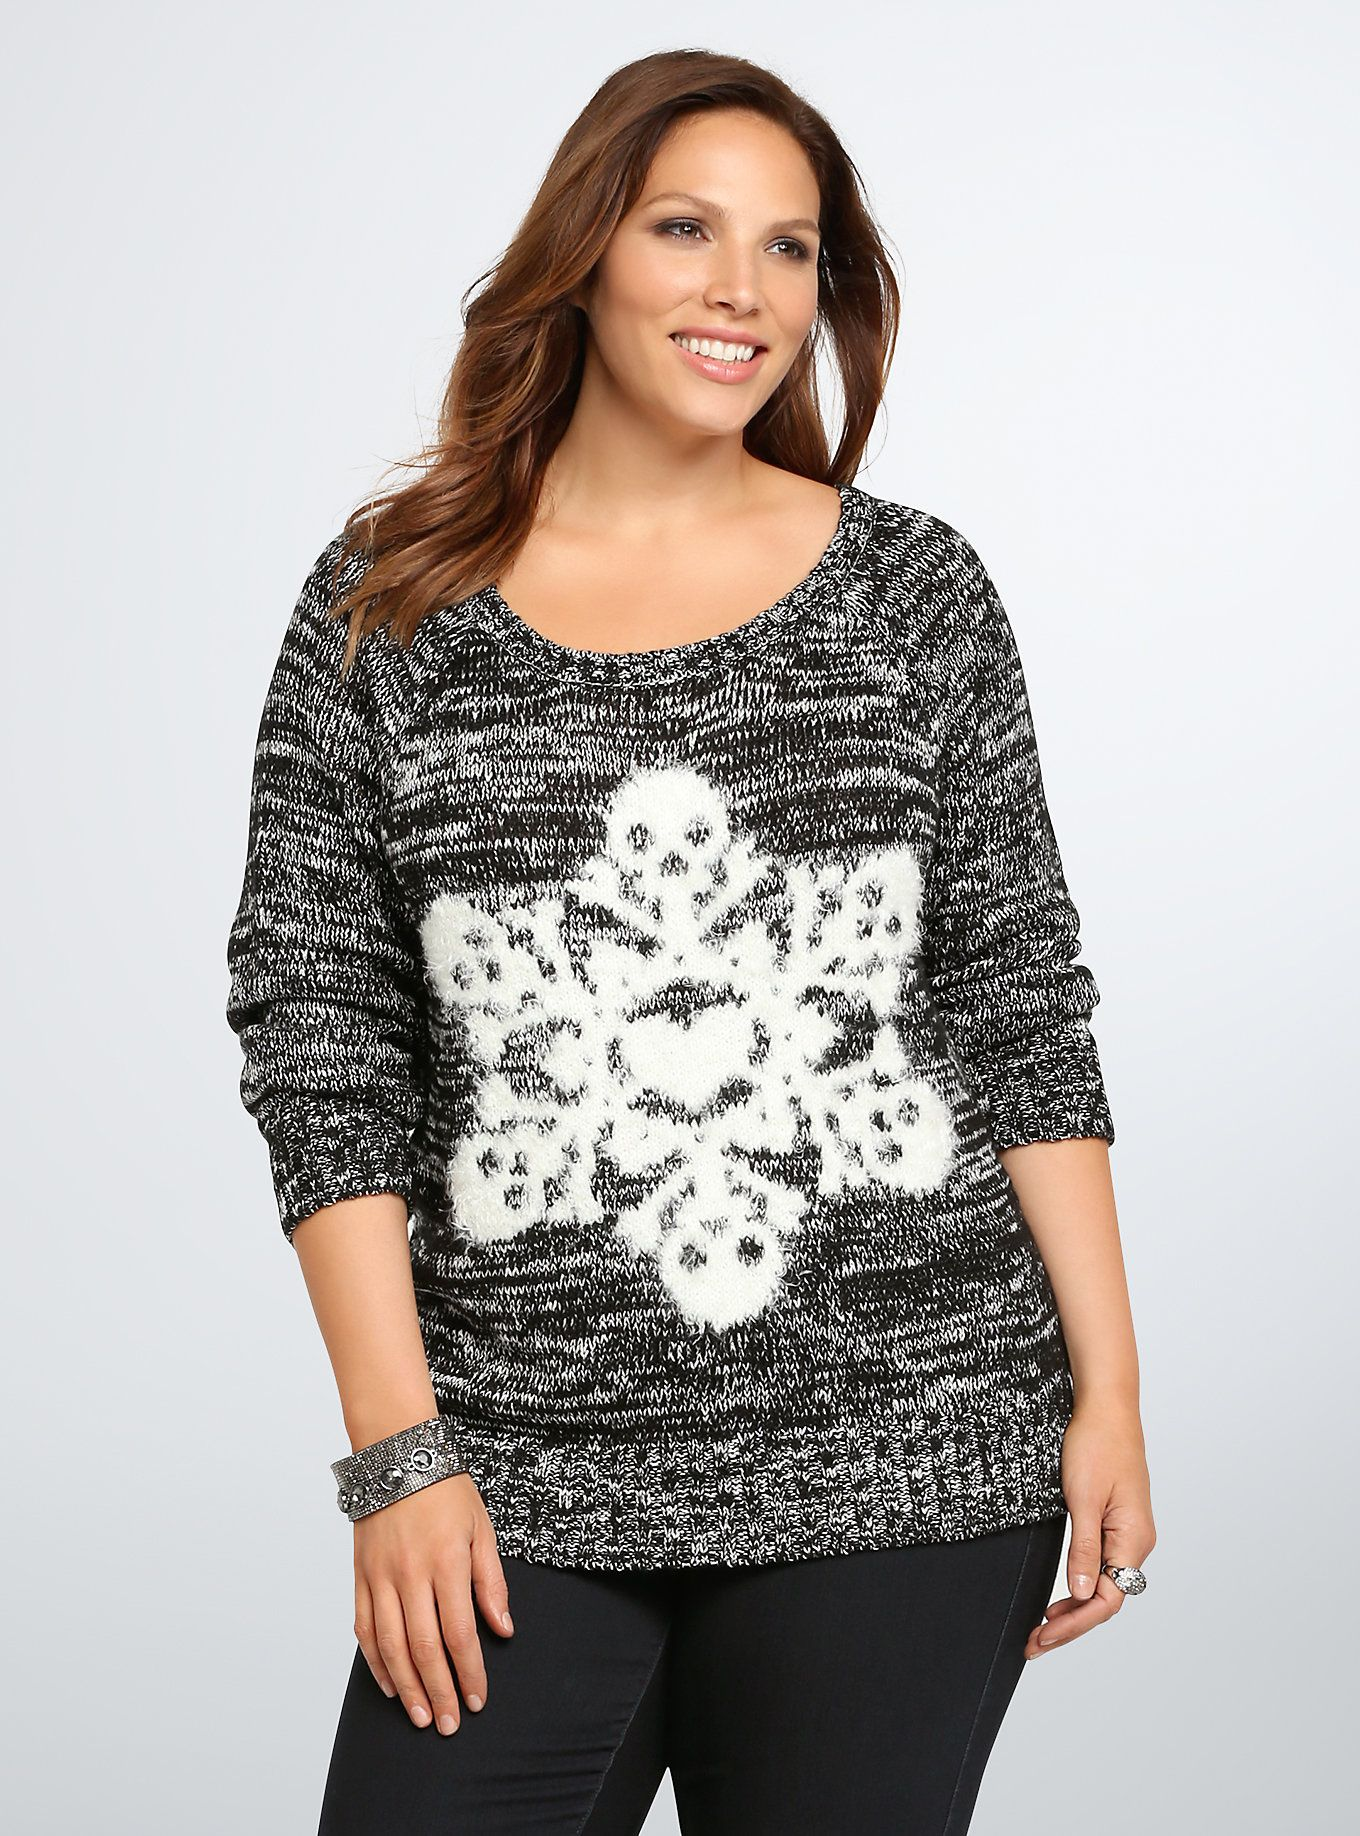 "<p>With this sweater, we can't wait for a snow day! The ""lounge by the fire"" black and white marled knit is super cozy, while a white fuzzy snowflake graphic gets a subtle punk touch with skull and heart graphics. Let it snow already!</p>  <p> </p>  <p><b>Model is 5'9.5"", size 1</b></p>  <ul> 	<li>Size 1 measures 29 1/2"" from shoulder</li> 	<li>Acrylic/polyester</li> 	<li>Wash cold, dry flat</li> 	<li>Imported plus size sweater</li> </ul>"